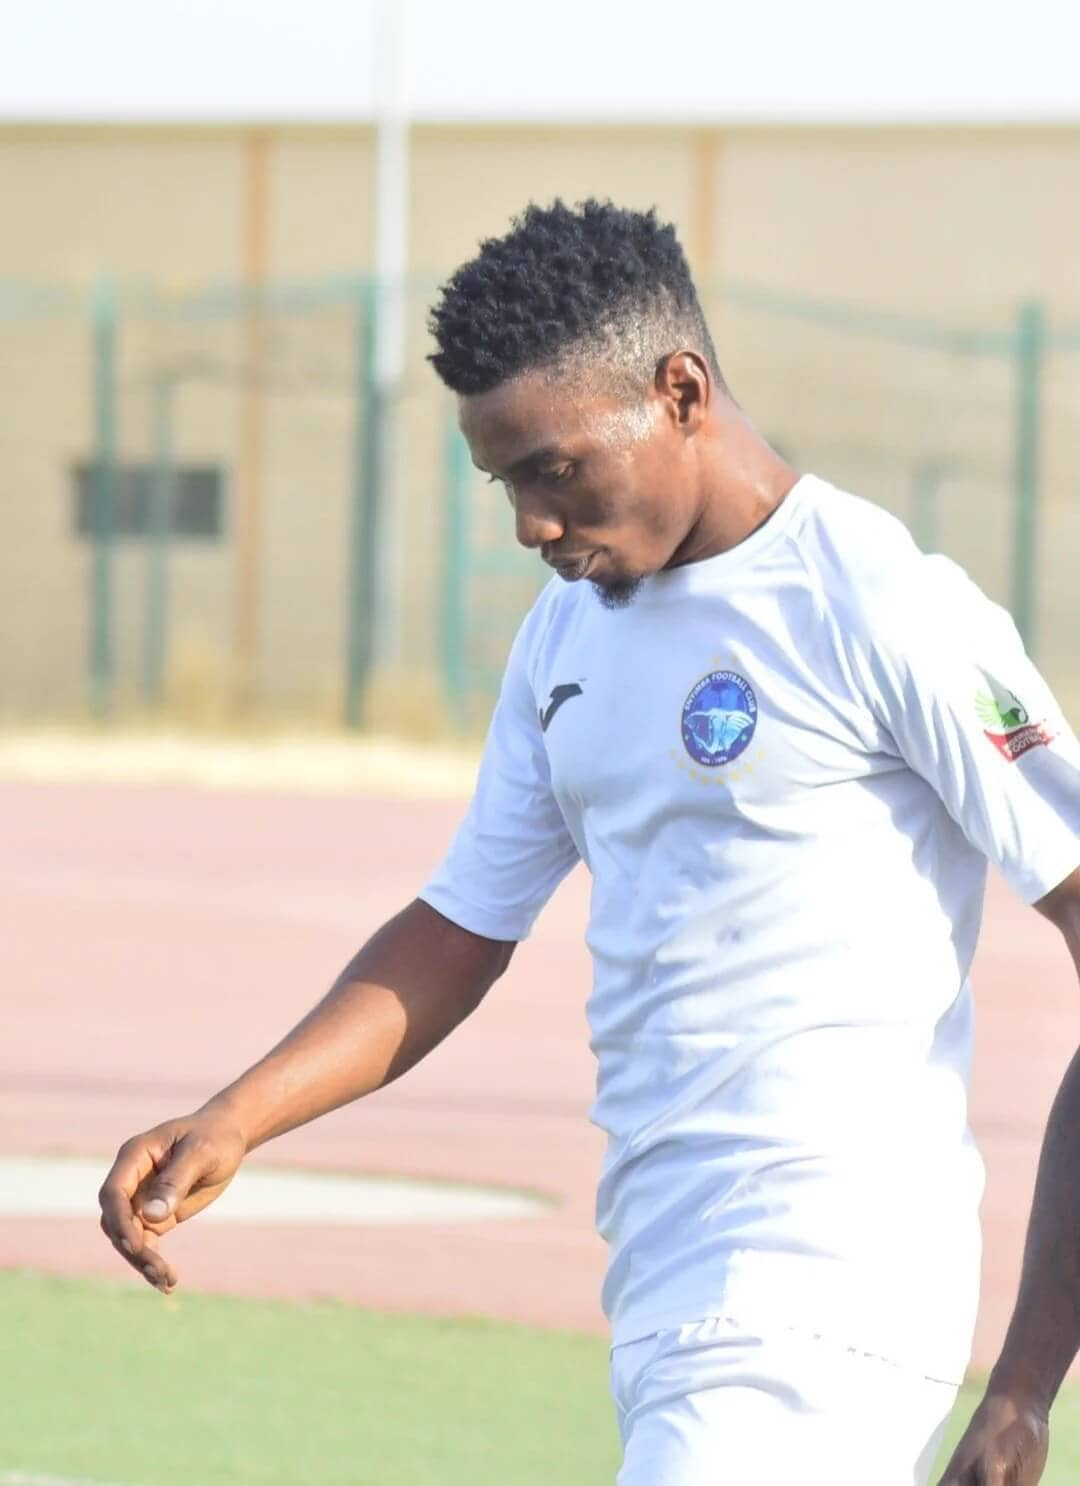 Enyimba release statement on kidnapped player 9 Sportelo